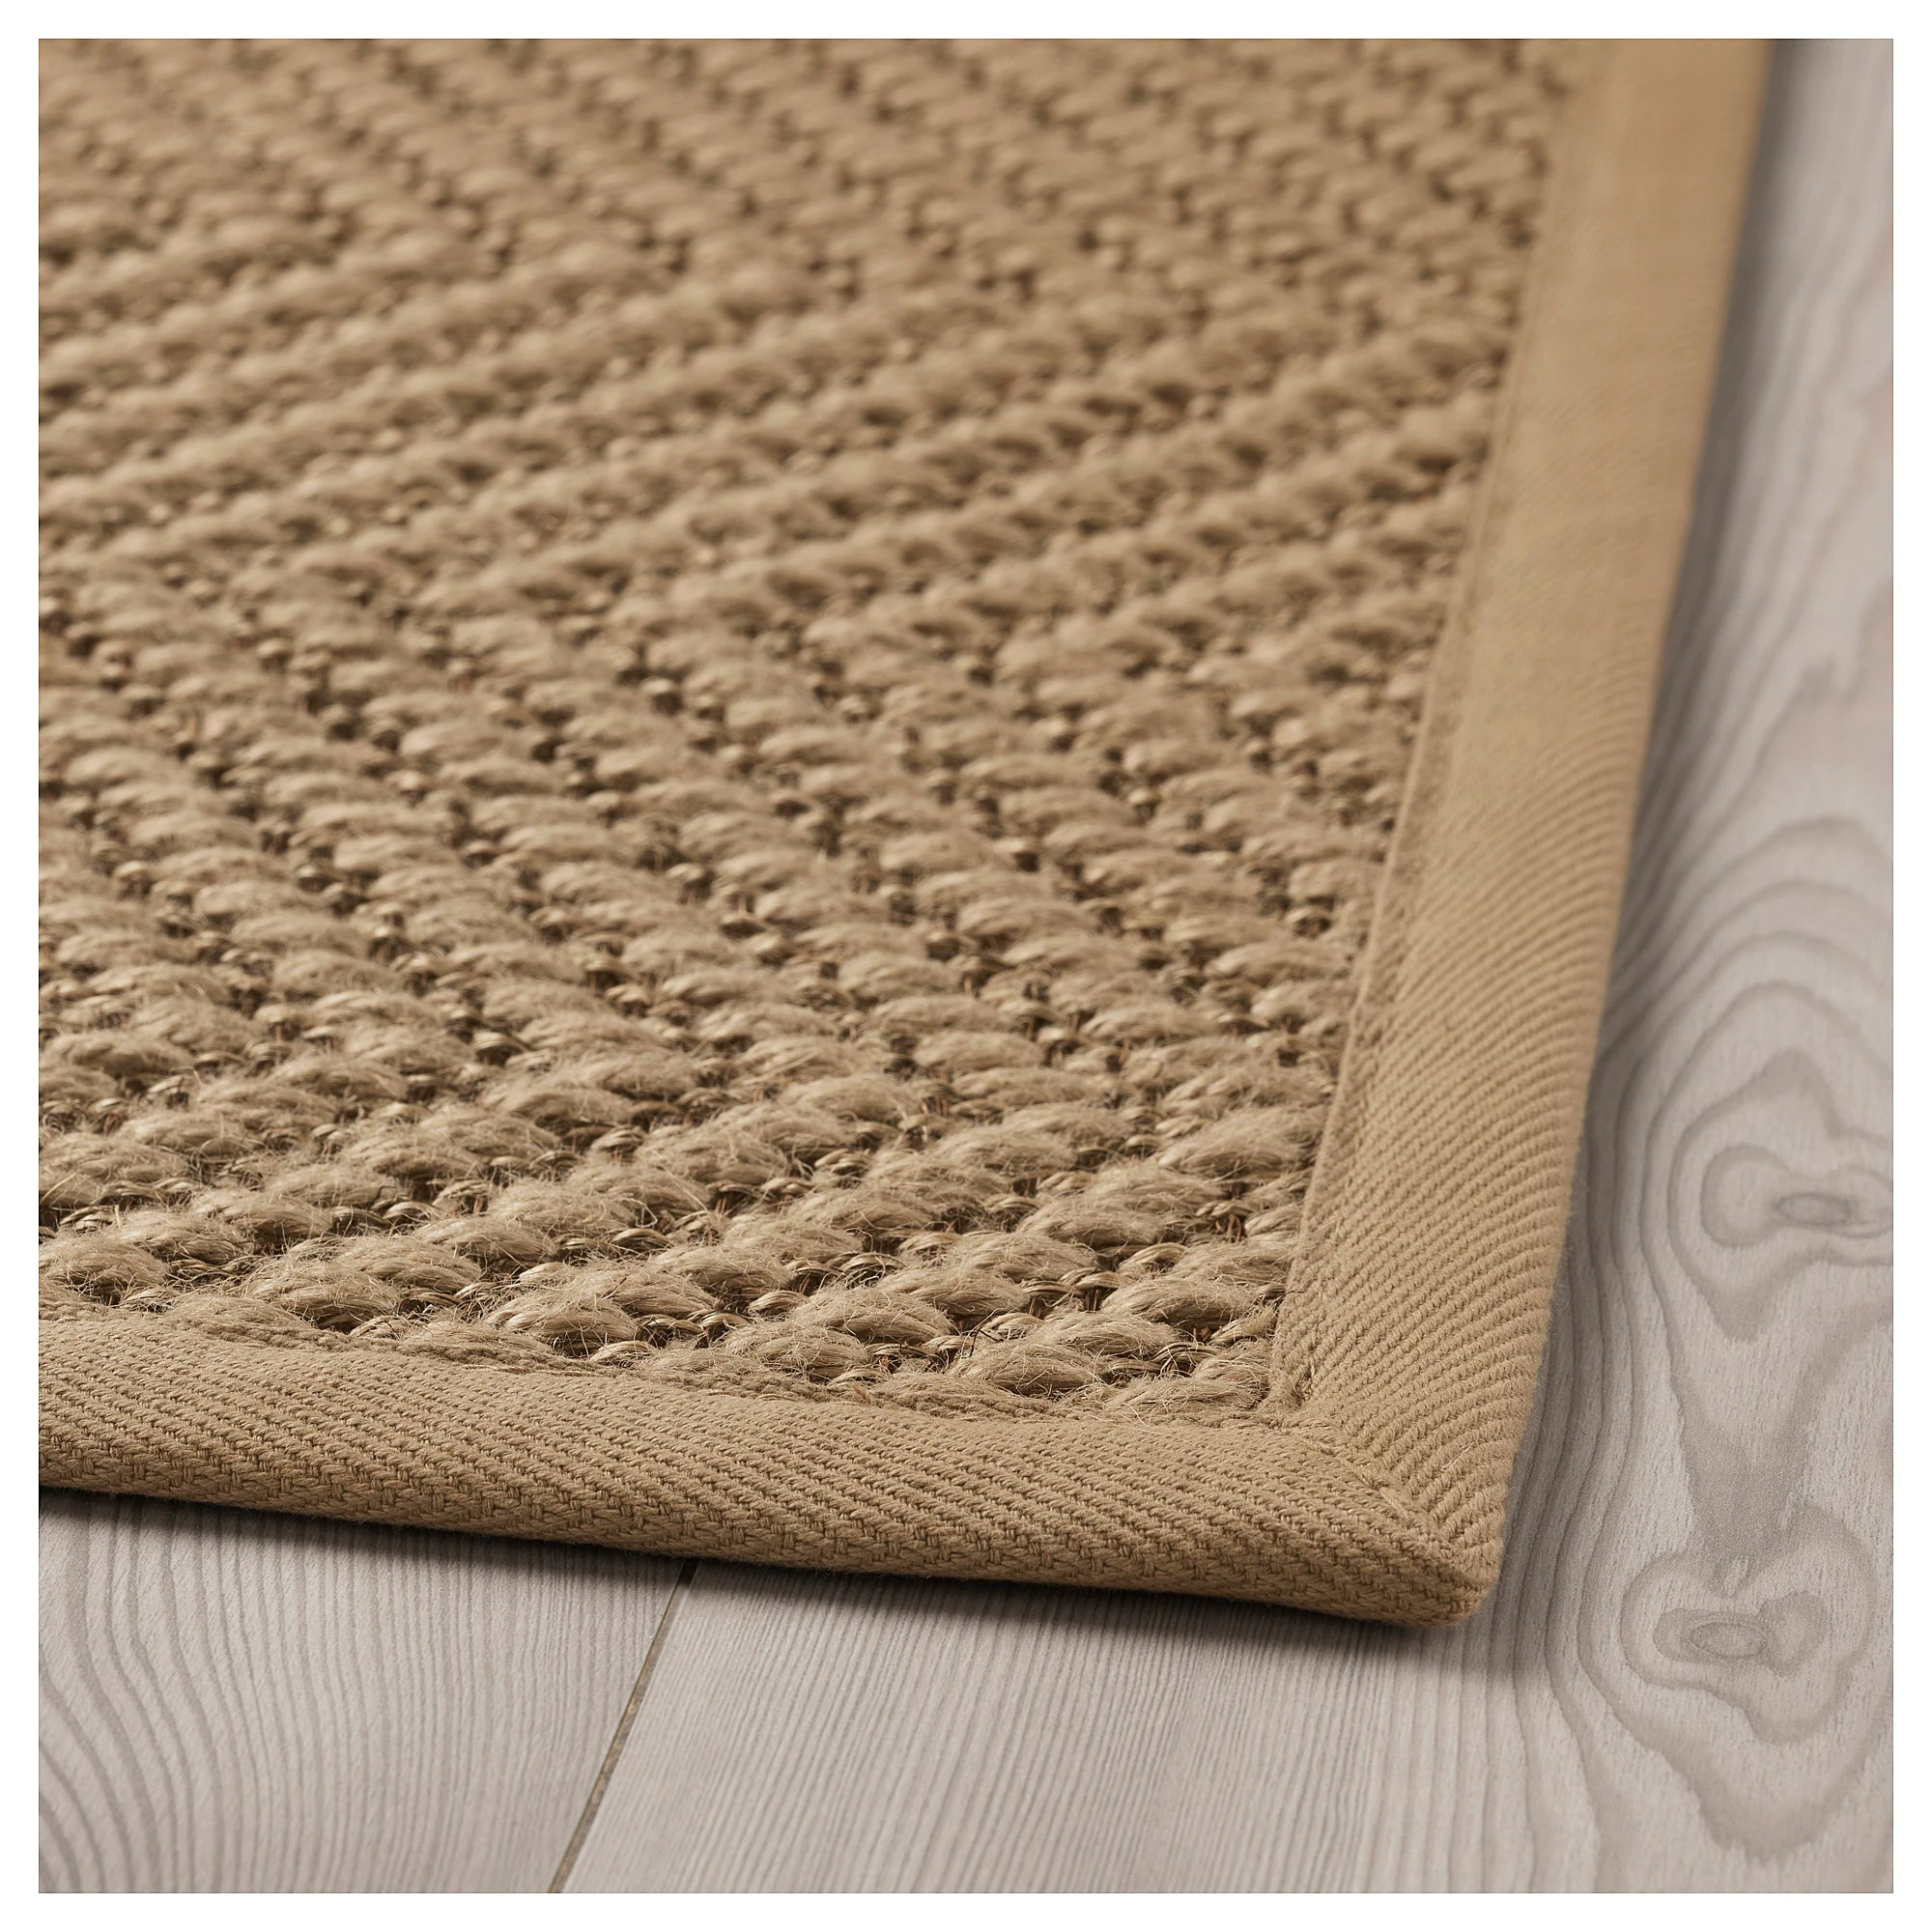 Ikea Niños Alfombras Hellested Rug, Flatwoven - Natural, Brown - Ikea